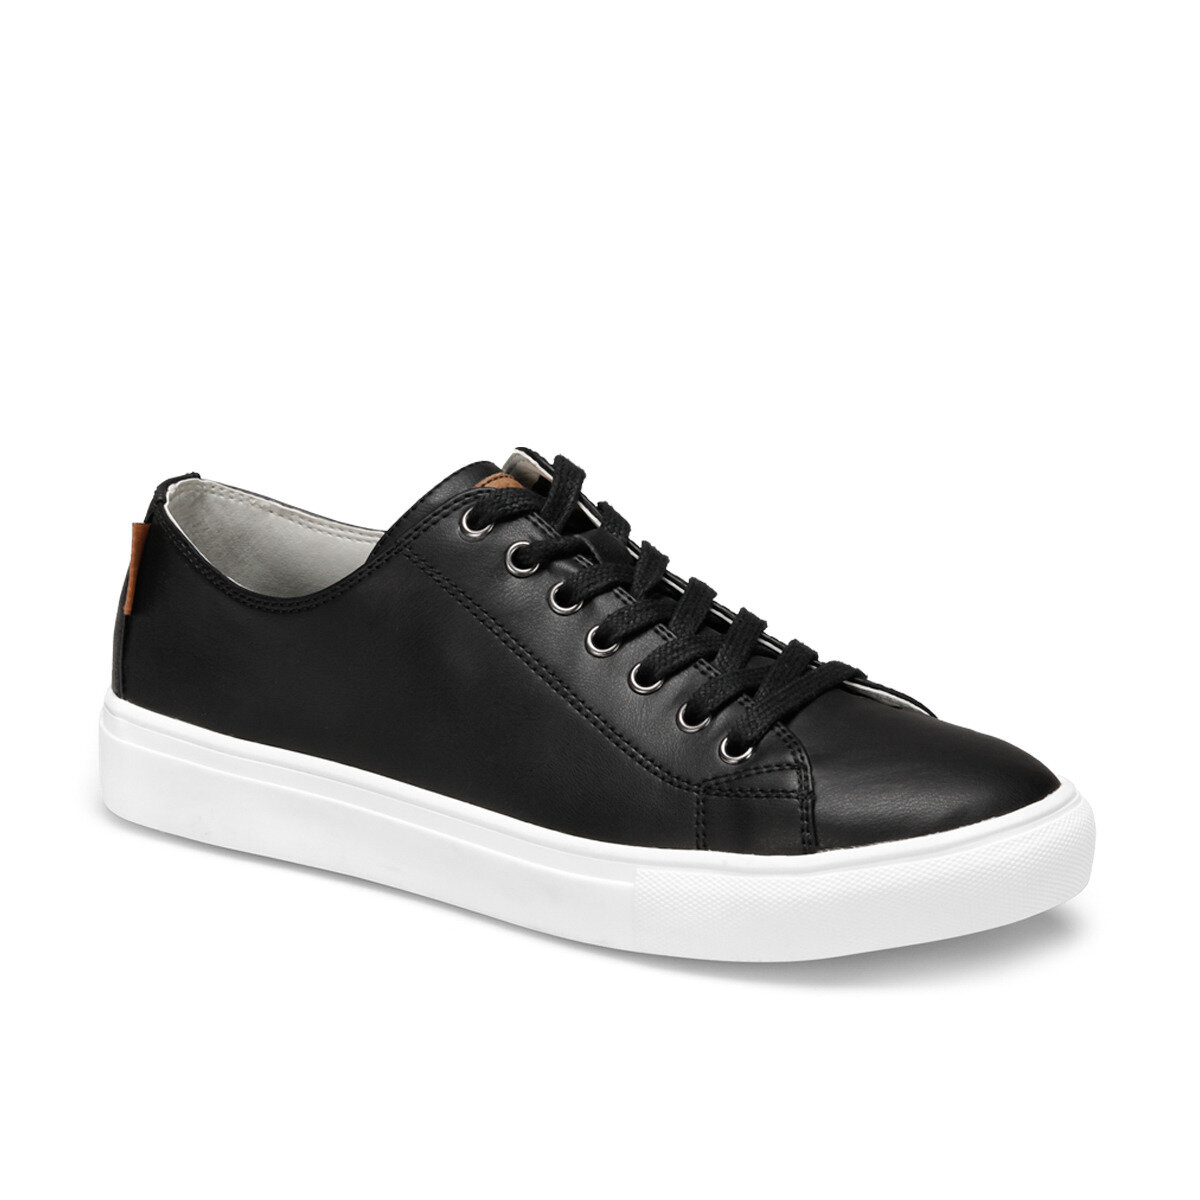 FLO 224244 Black Male Sneaker By Dockers The Gerle